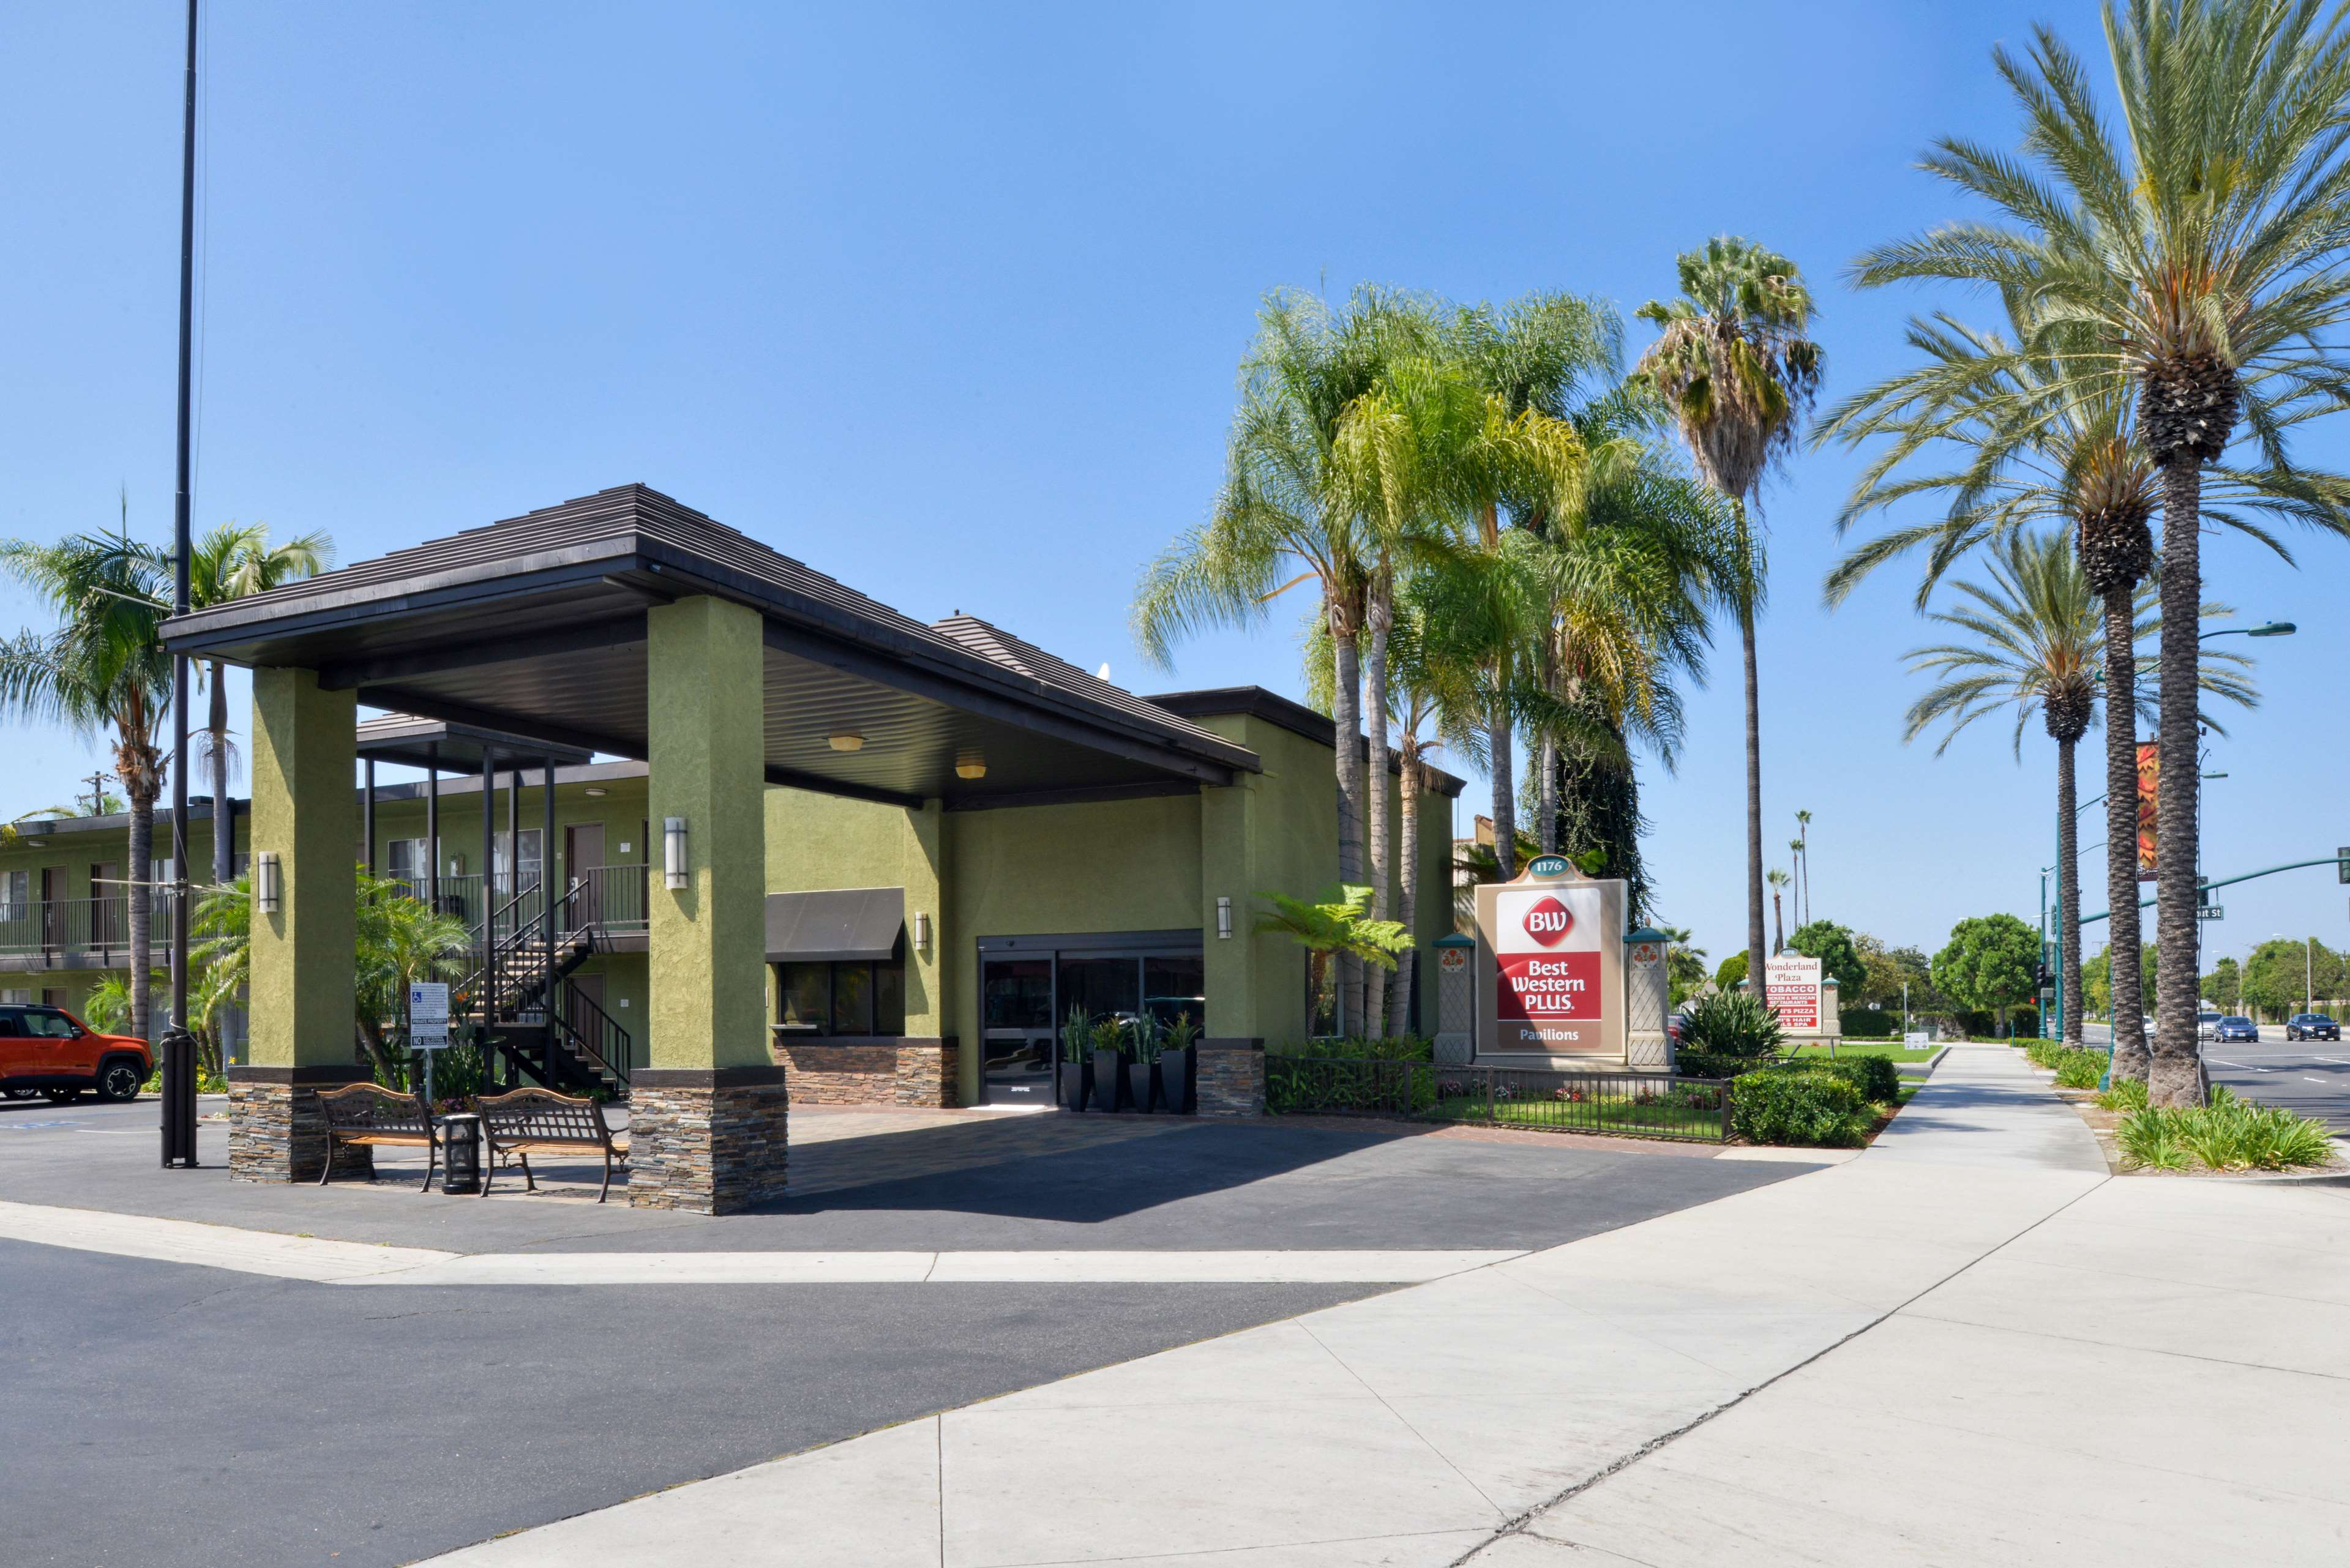 Hotels Near  W Katella Ave Anaheim Ca